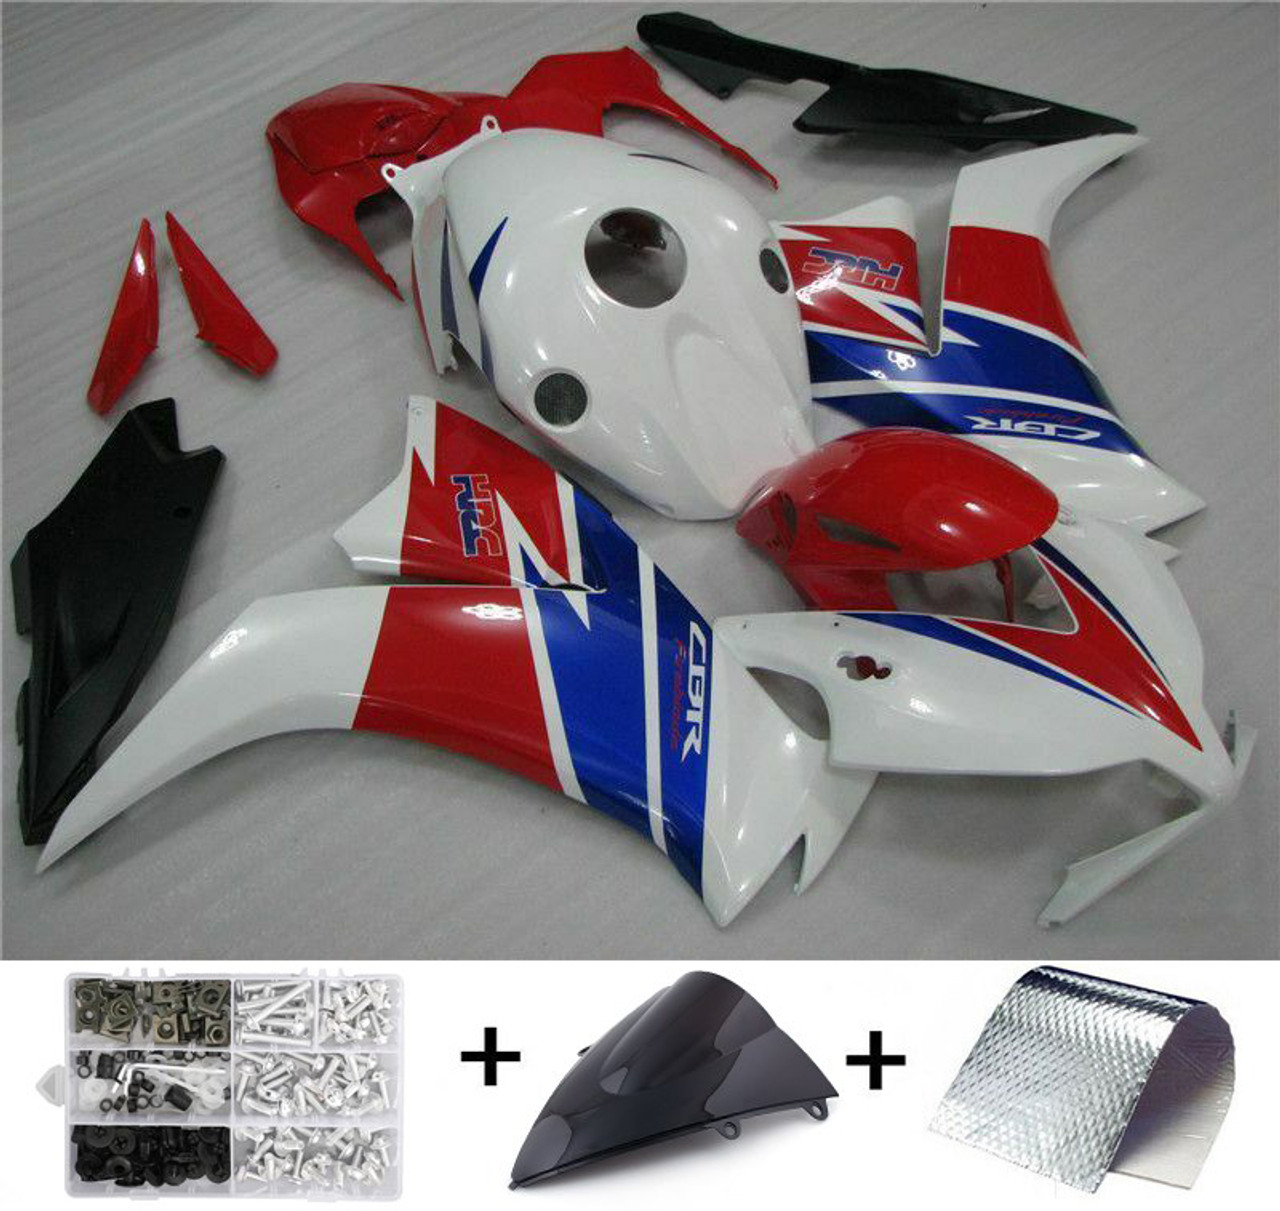 ABS Injection Mold Bodywork Fairing Kit For Honda CBR1000RR 2012-2016 White Red